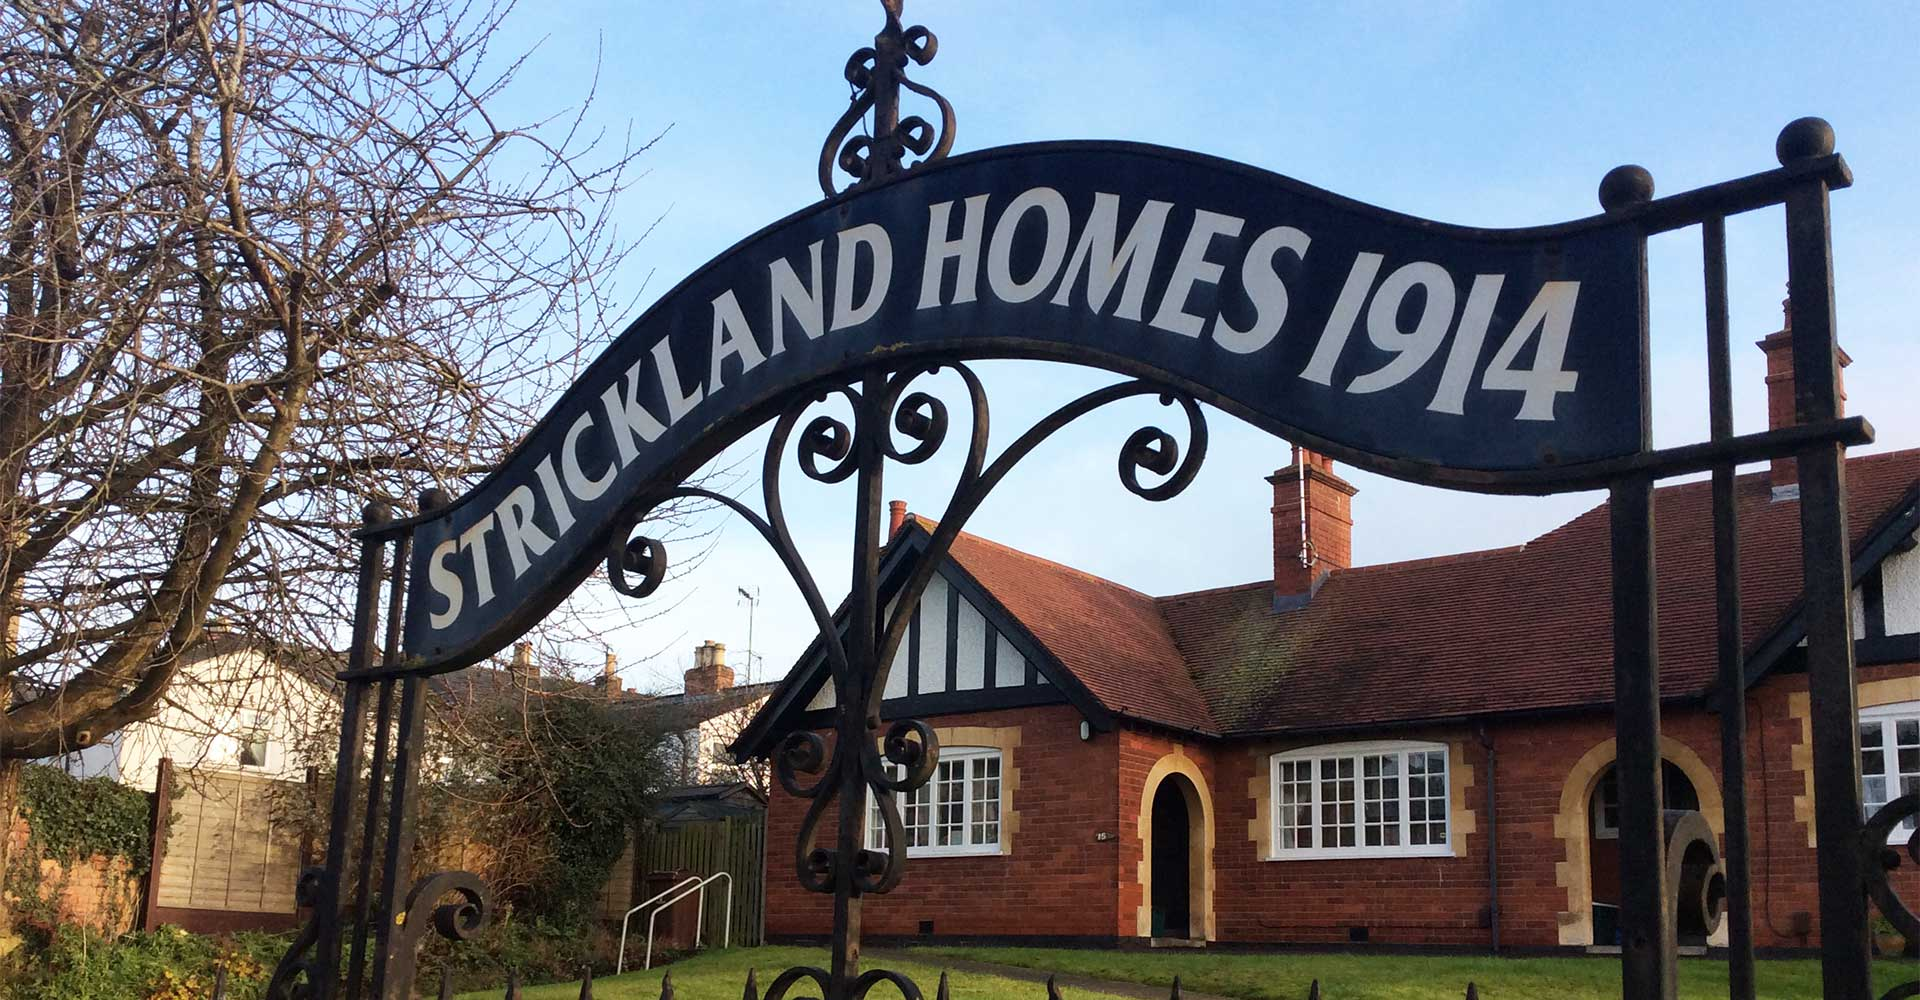 Strickland Homes Almshouses accommodation sign